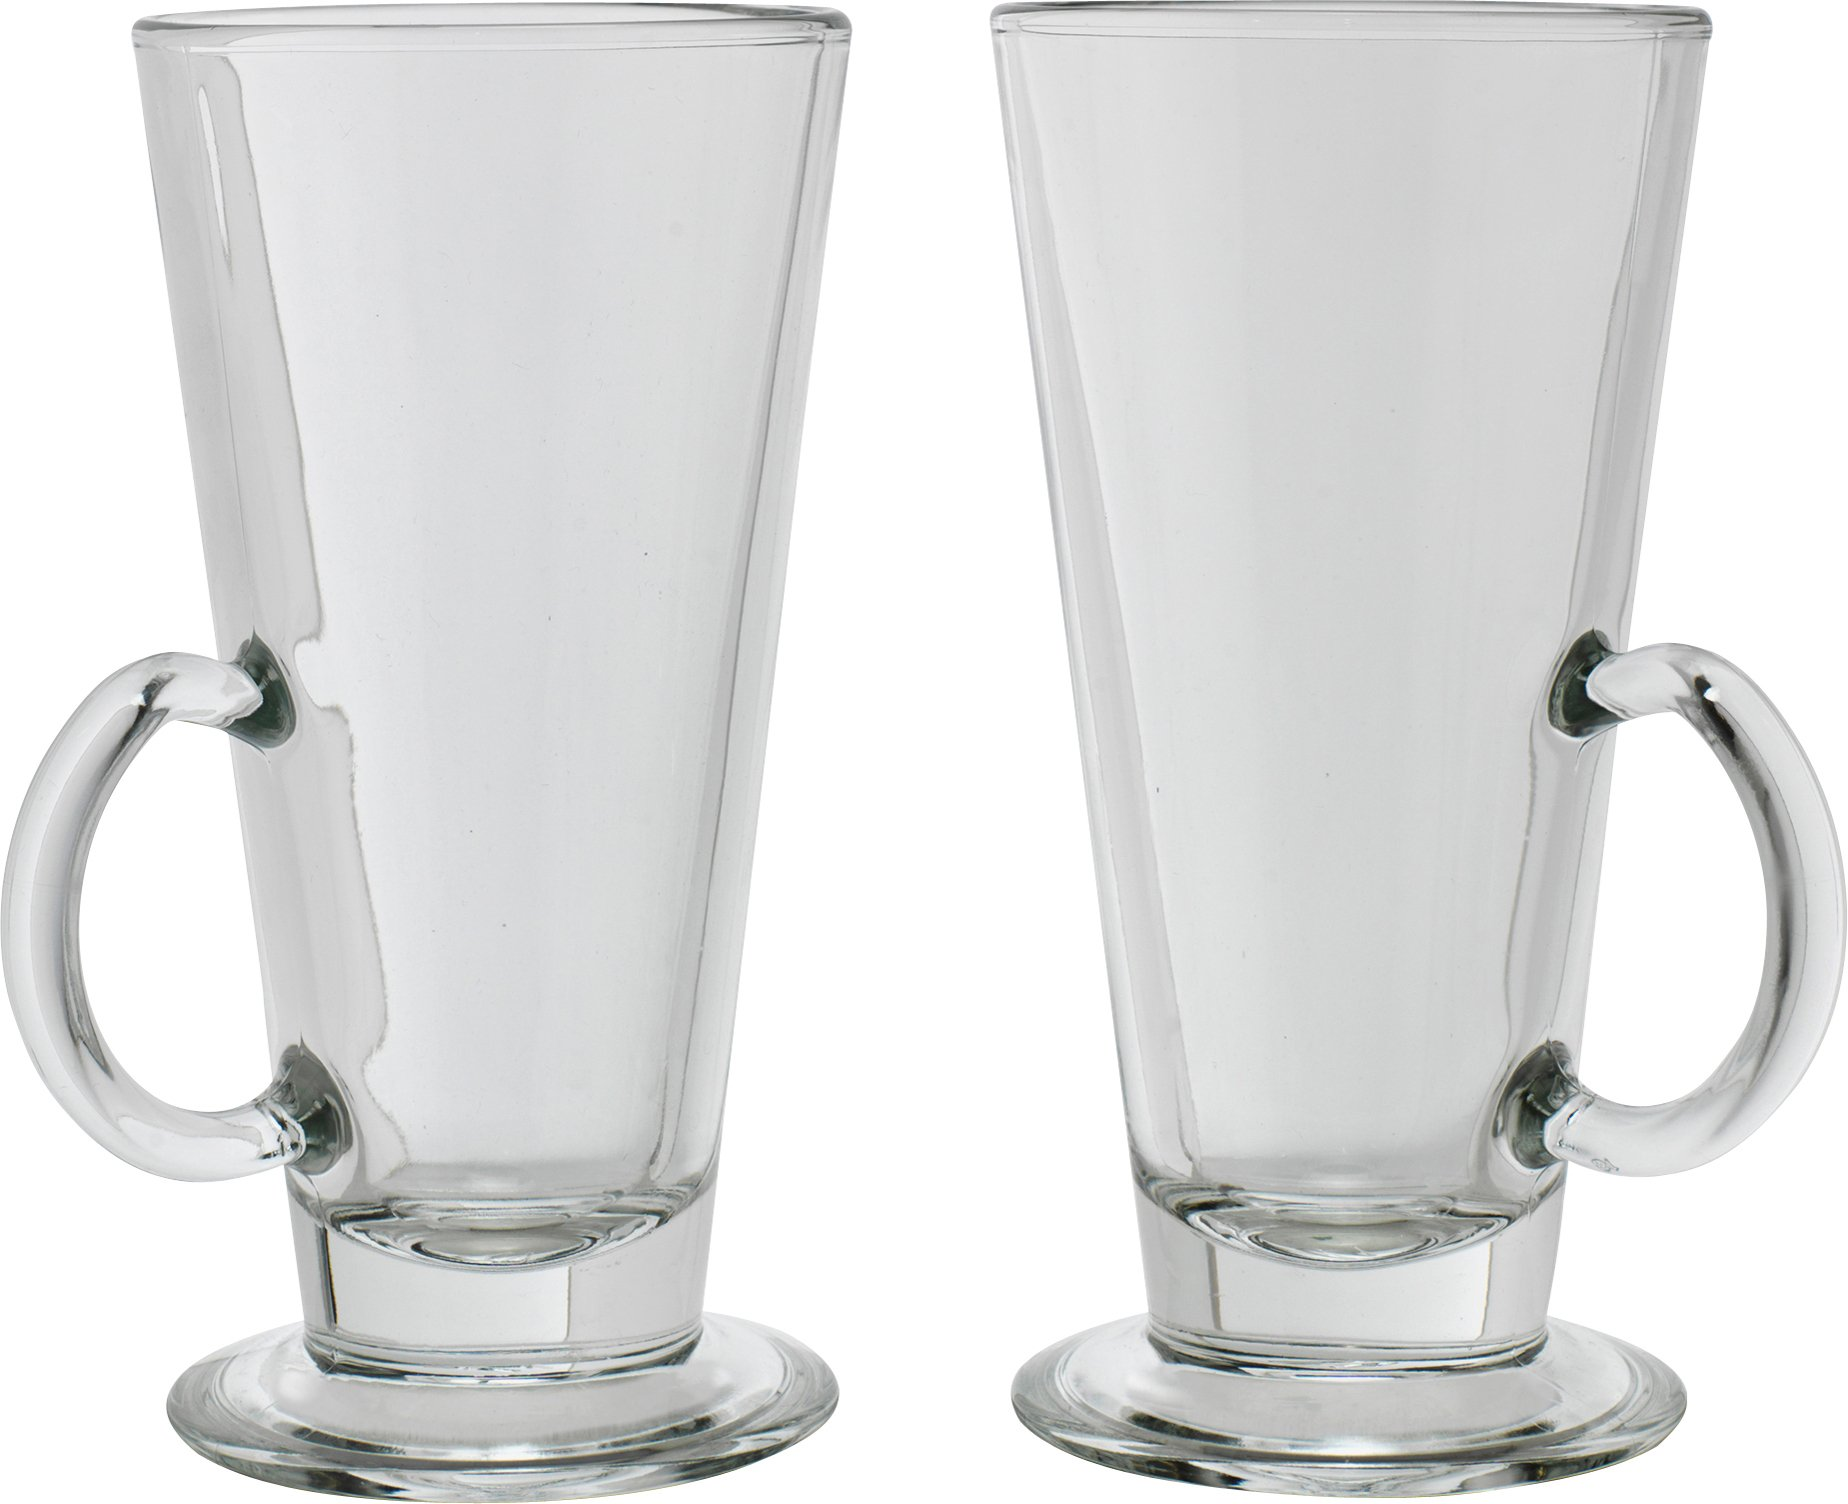 heart-of-house-coffee-time-2-piece-latte-glasses